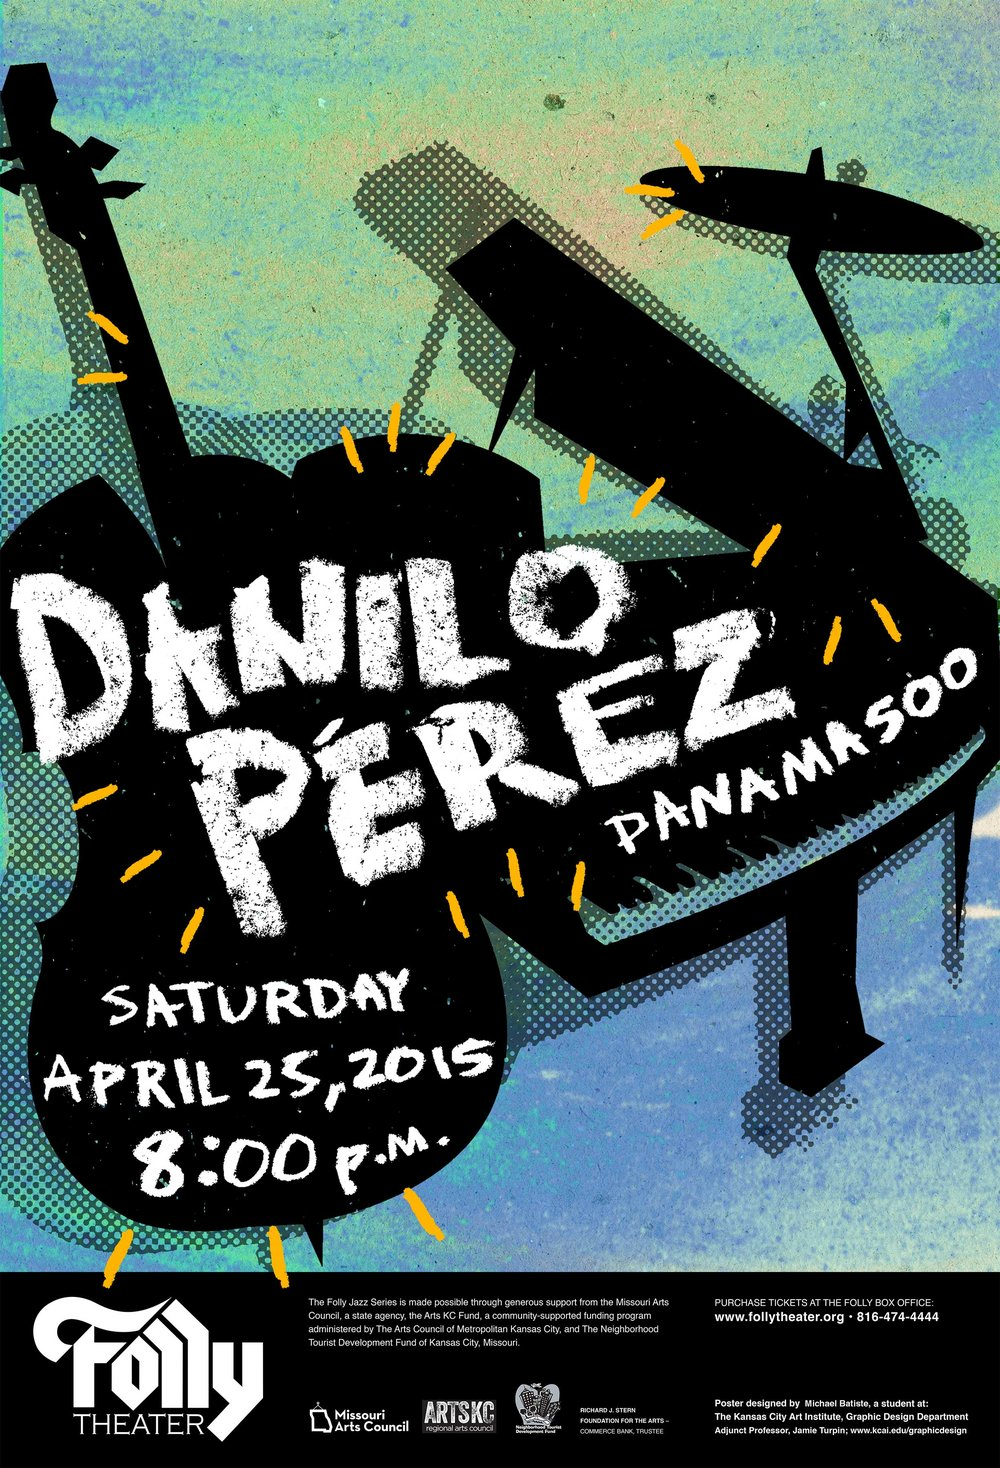 Folly Theatre Poster - Poster Design / Poster ContestPiece Date: April 2015This piece was a poster contest for Grammy Award-winning Panamanian jazz recording artist, Danilo Perez. It was on display at the Folly theater and was used as promotional artwork for the concert. This piece embodies the energy and vibrancy of the culture used to create the music, while showing an amalgamation of instruments.